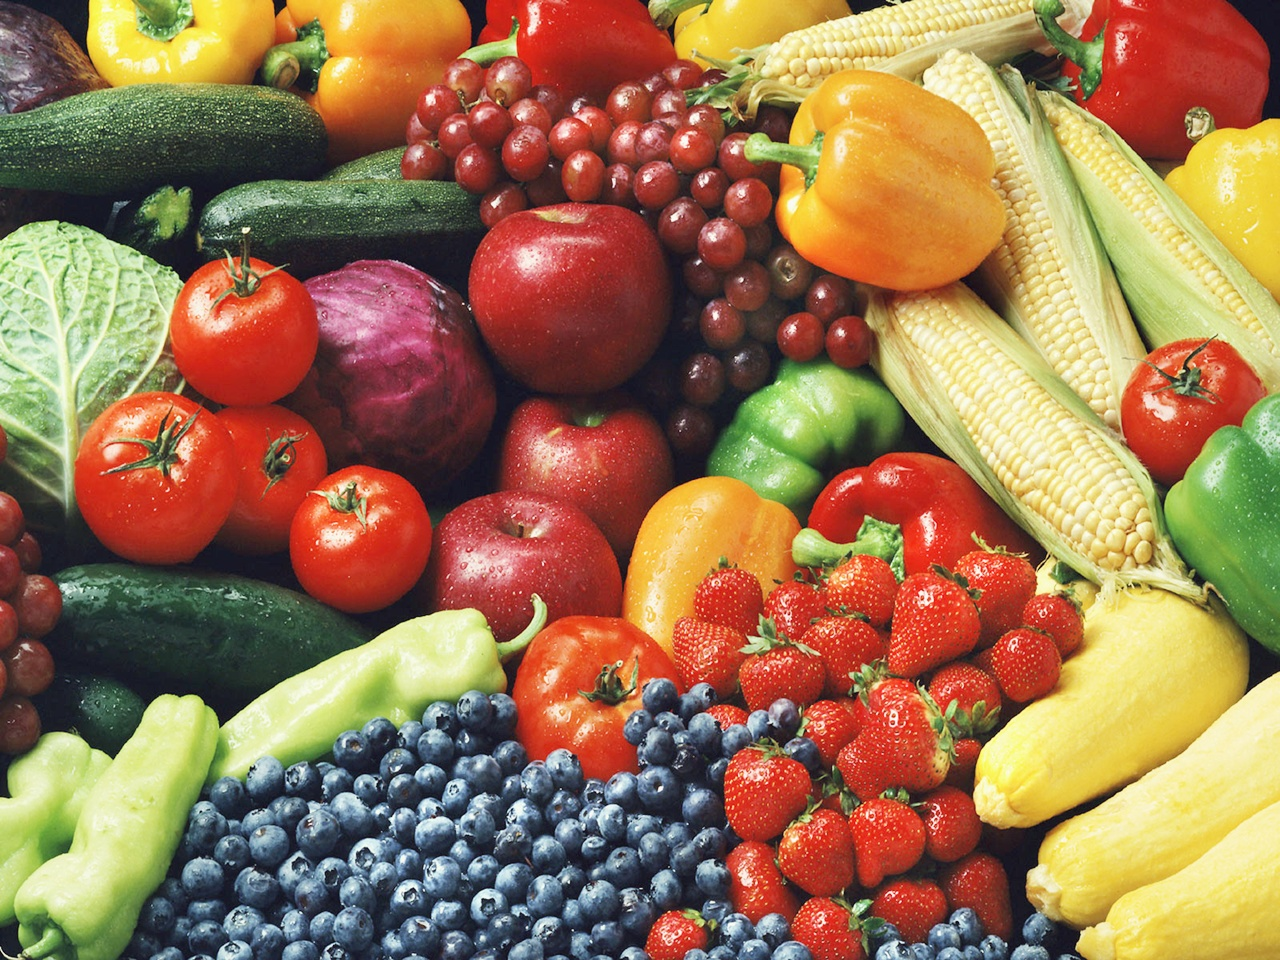 [41+] Fruit and Vegetable Wallpaper on WallpaperSafari